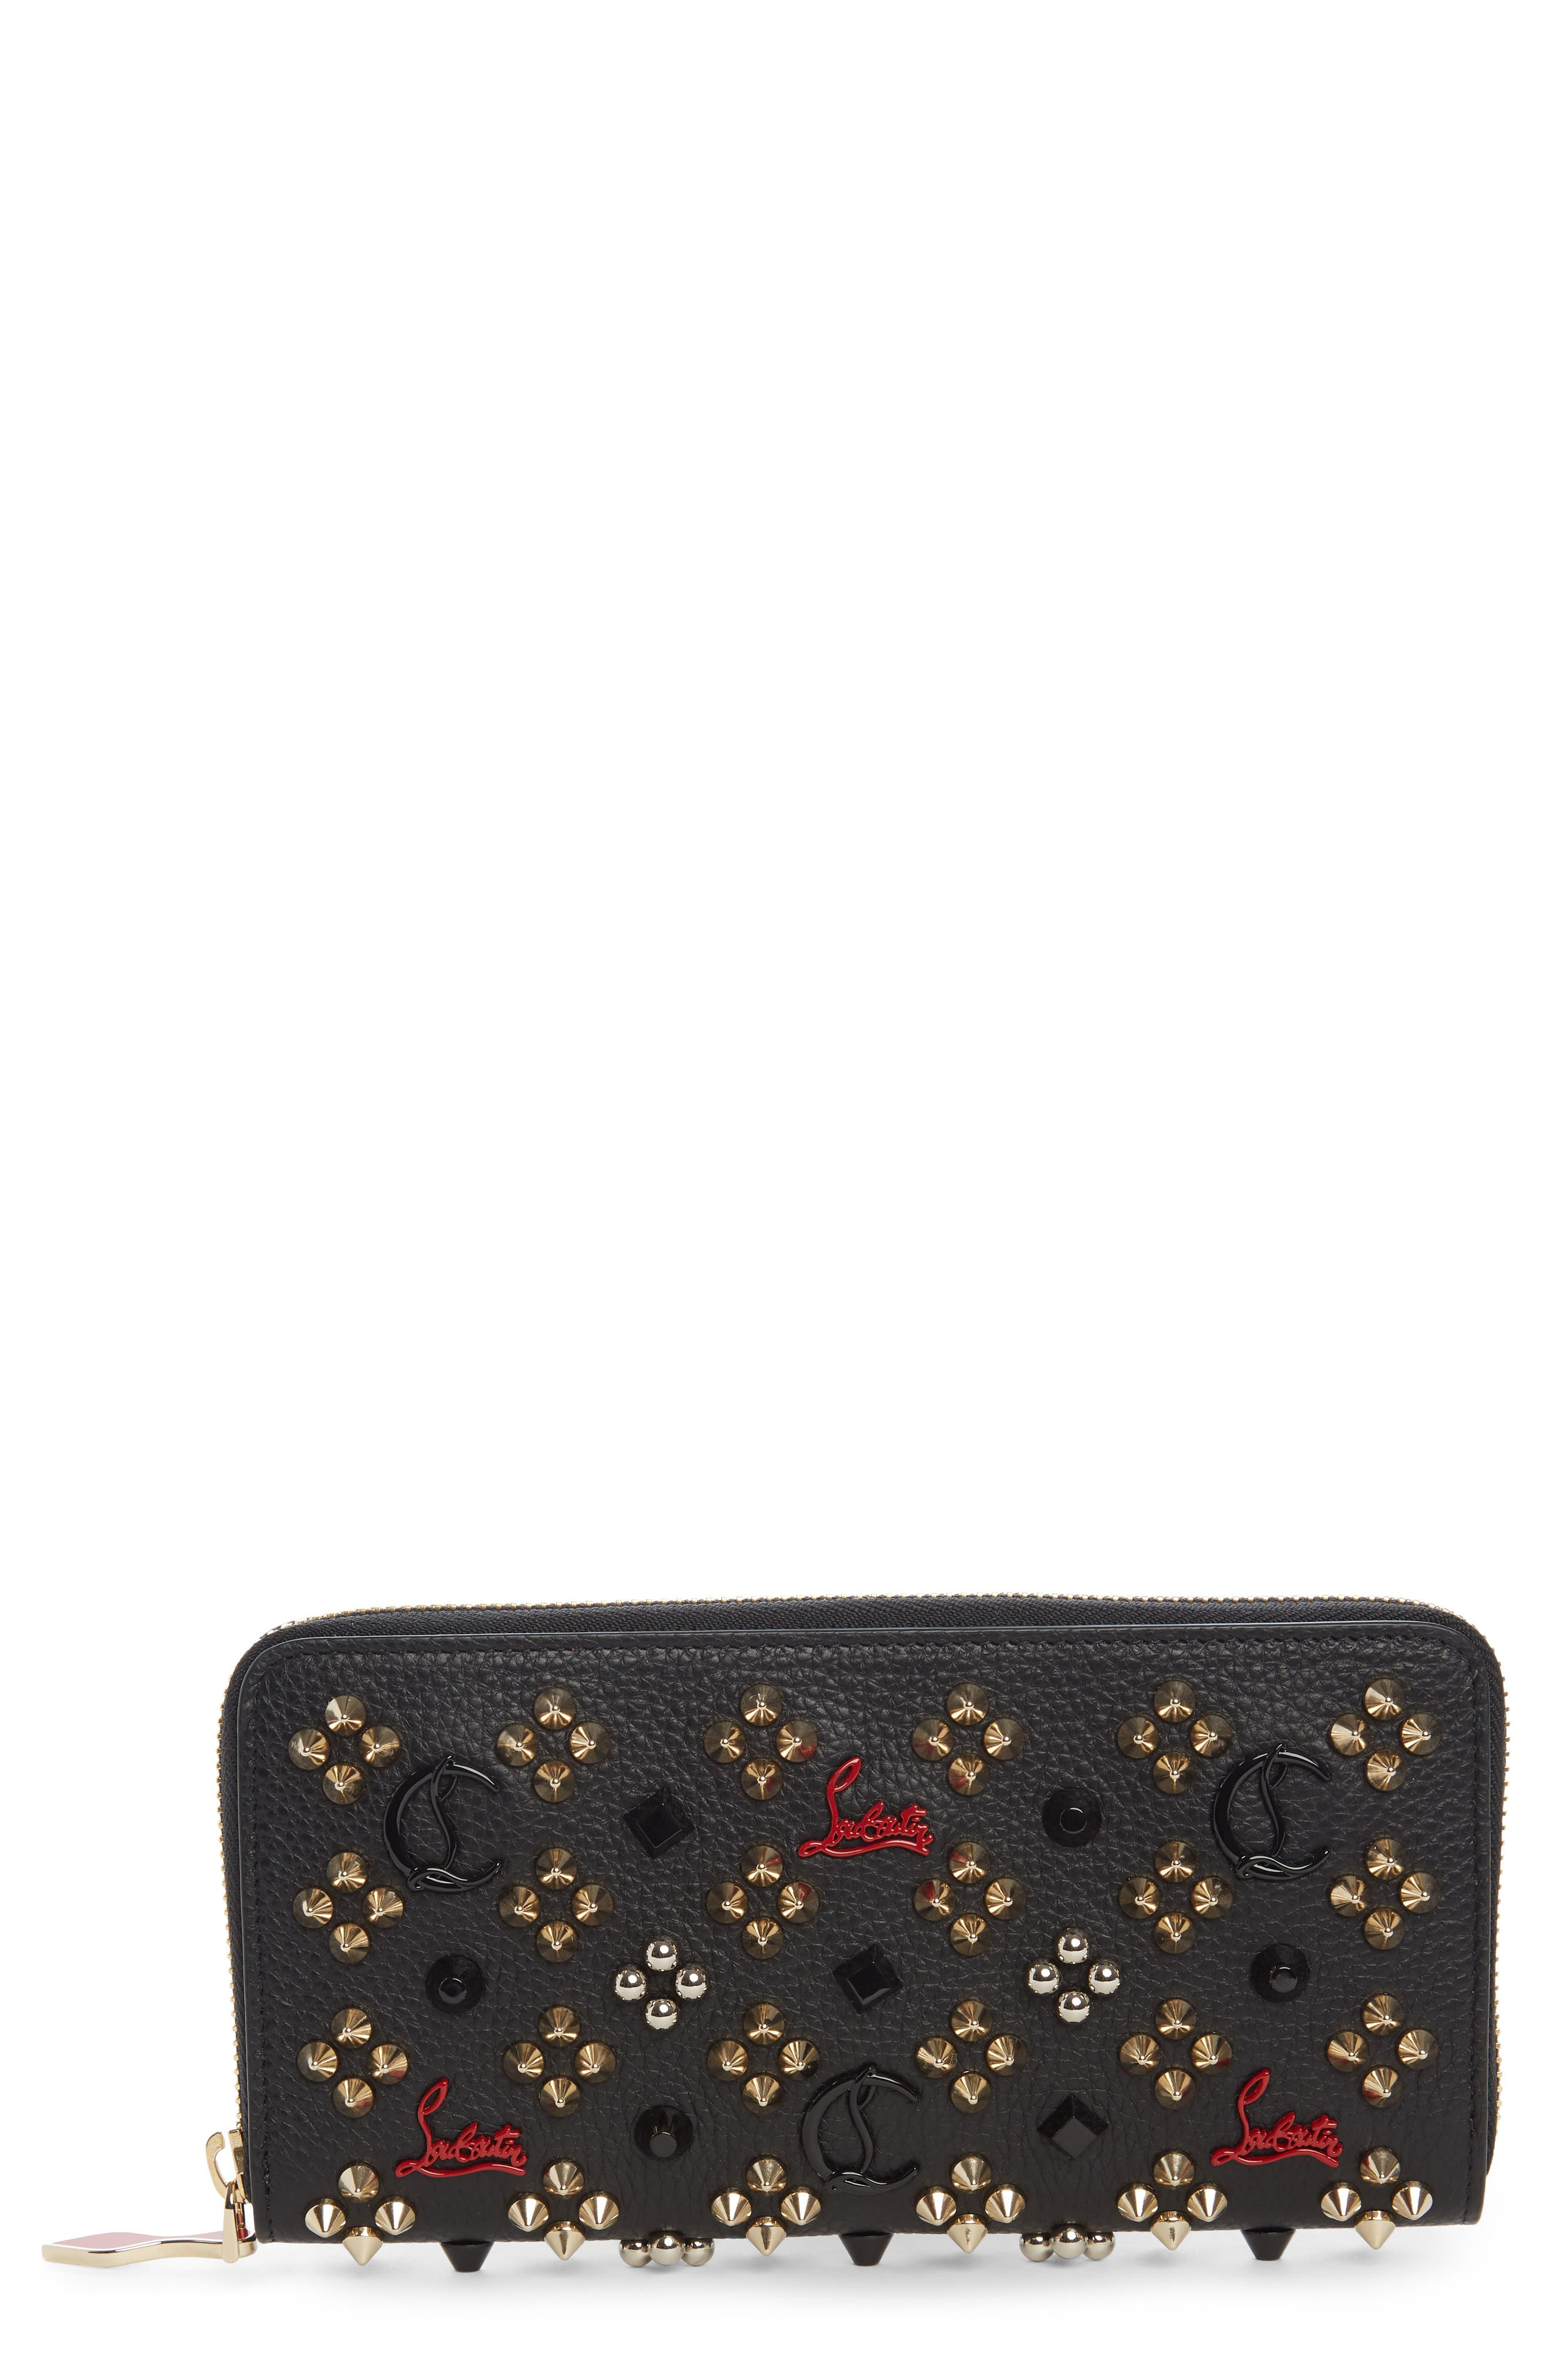 Panettone Spiked Calfskin Wallet,                         Main,                         color, BLACK/ RED-GOLD